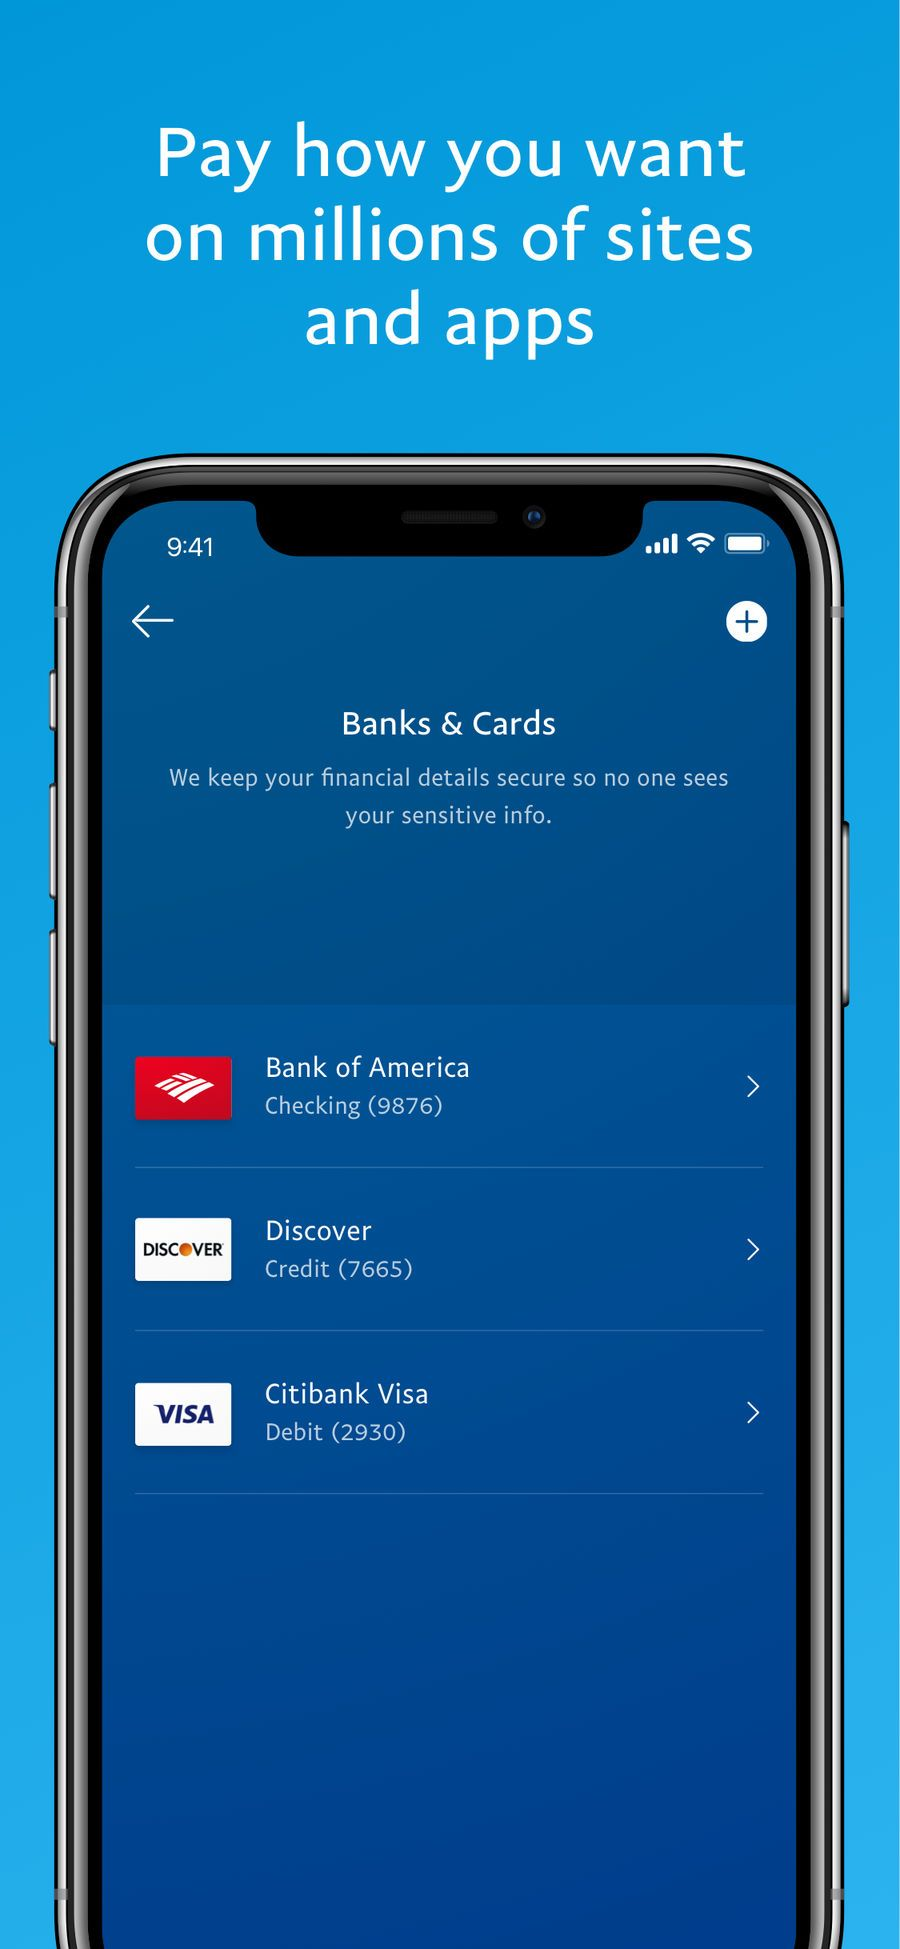 Paypal ipad app  PayPal App for iPhone and iPad  2019-06-07